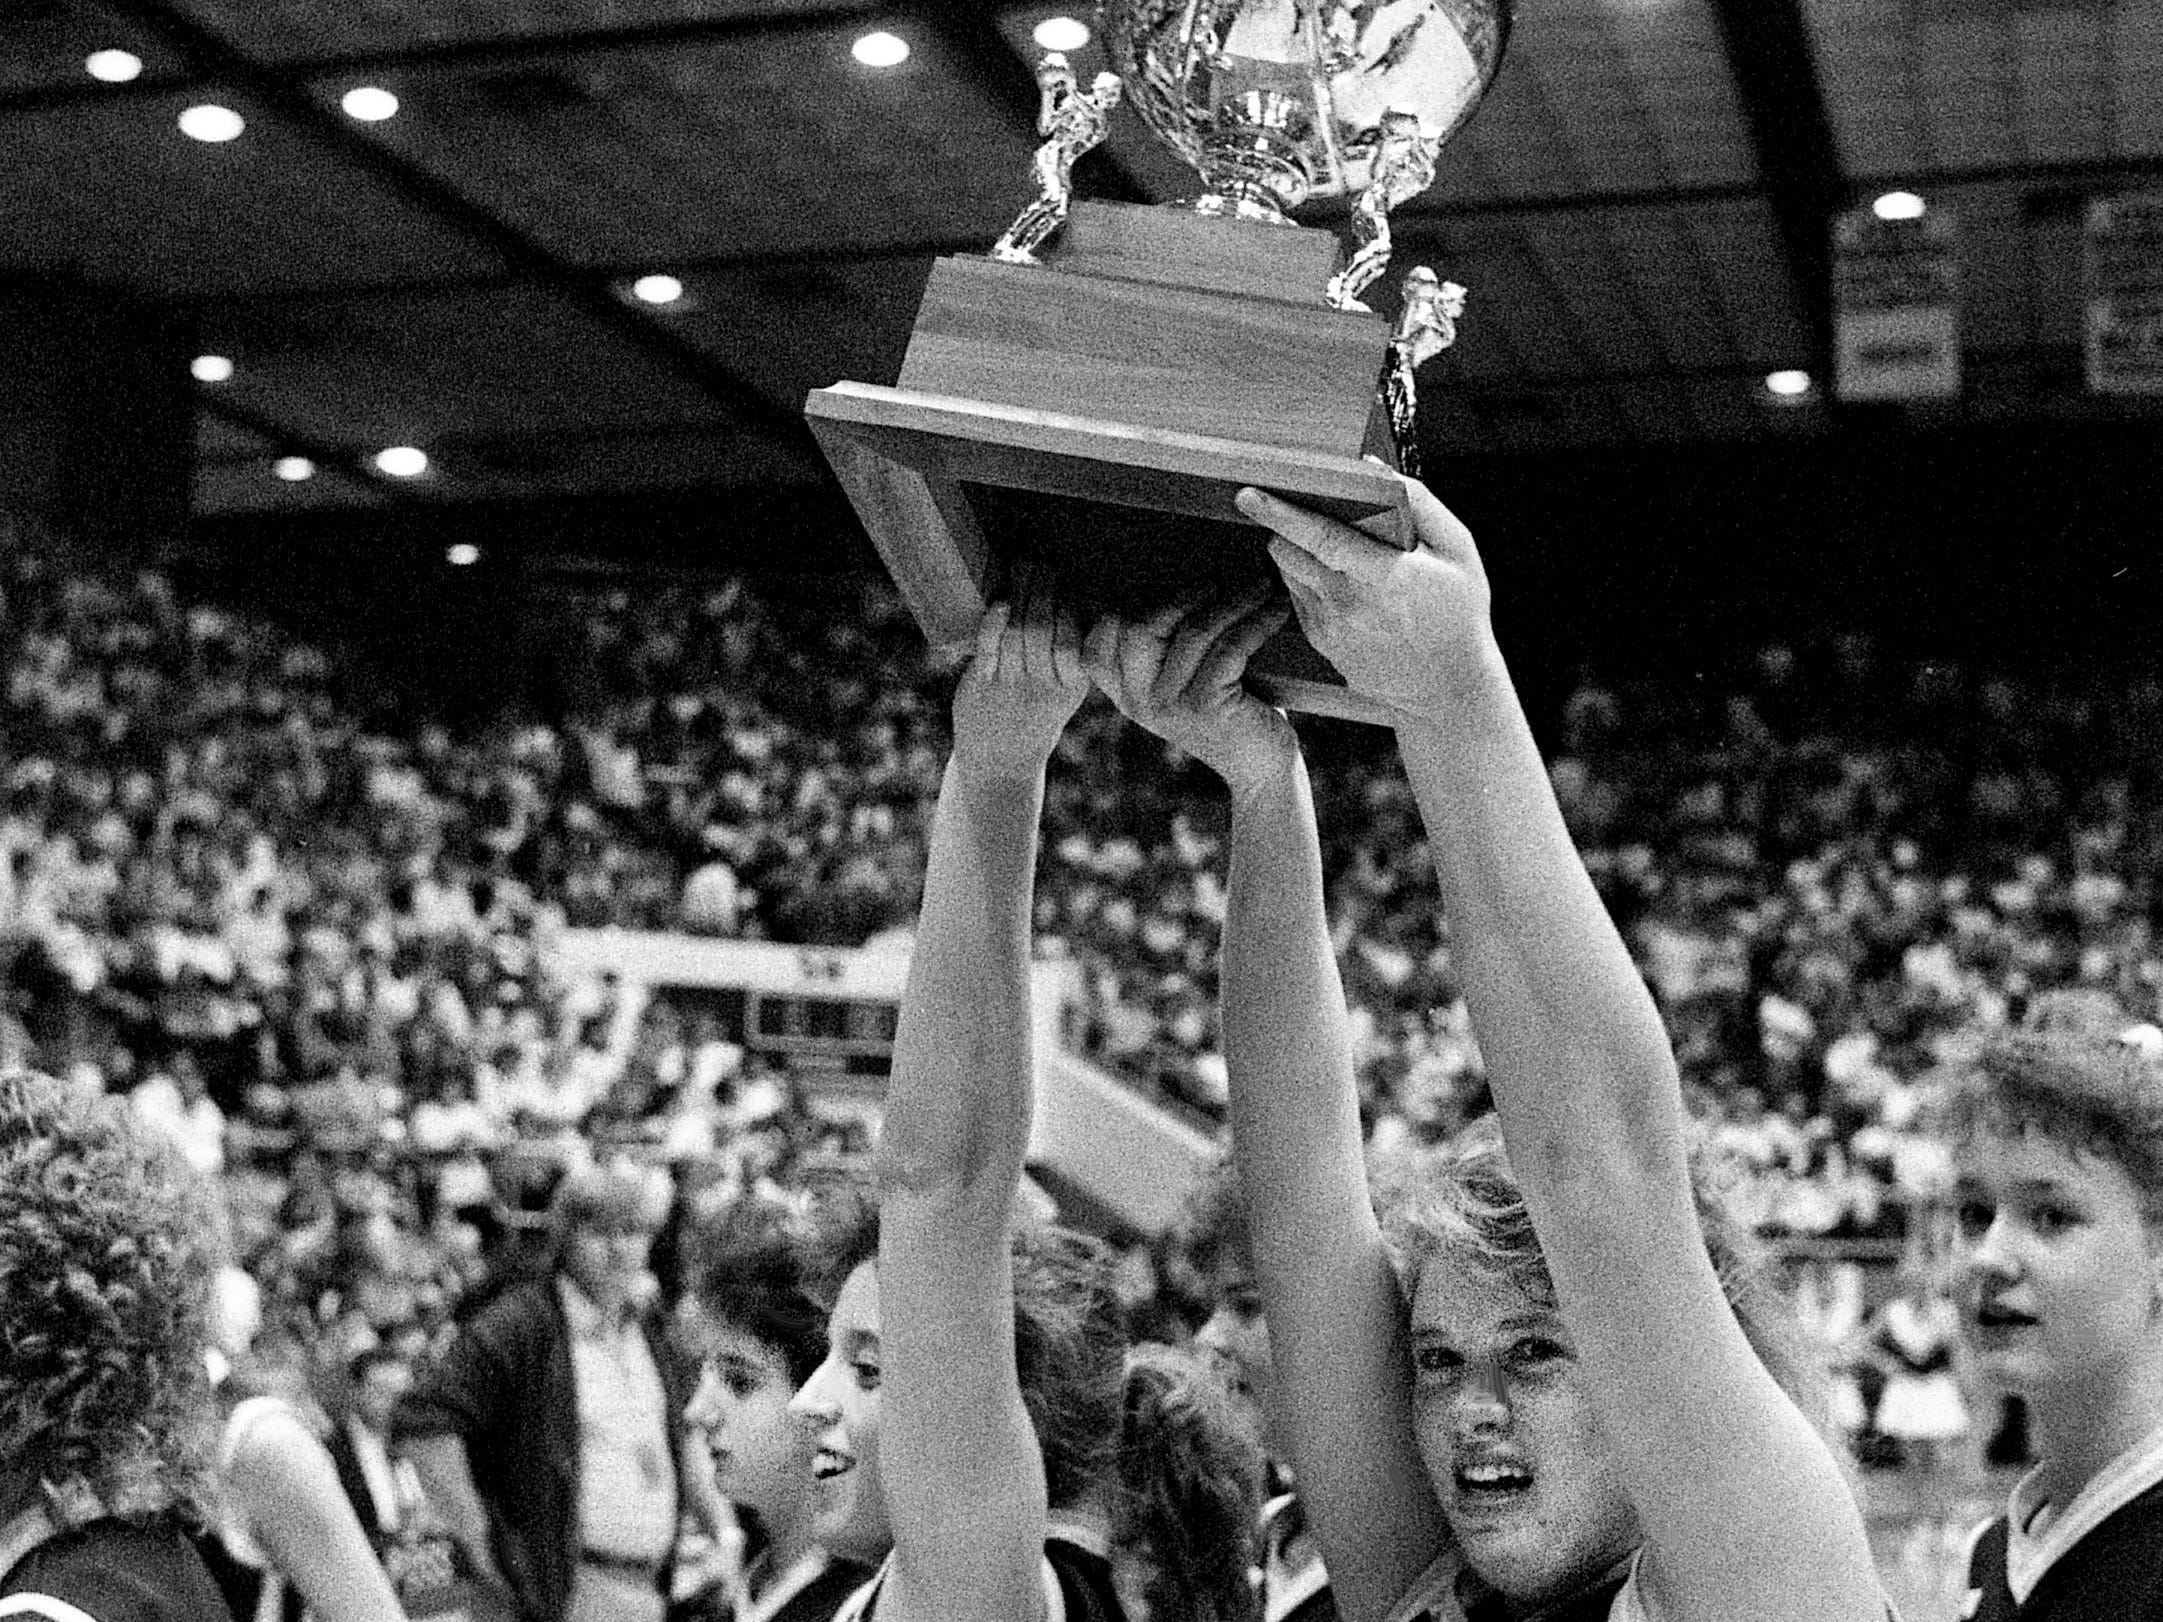 Cannon County High's Tracey Smithson, left, and Reggie King (50) hoist the Class AA title trophy after defeating Happy Valley High 51-46 in the TSSAA State Tournament at MTSU's Murphy Center in Murfreesboro on March 11, 1989. Cannon County had lost in the finals the past two years to South Greene High.